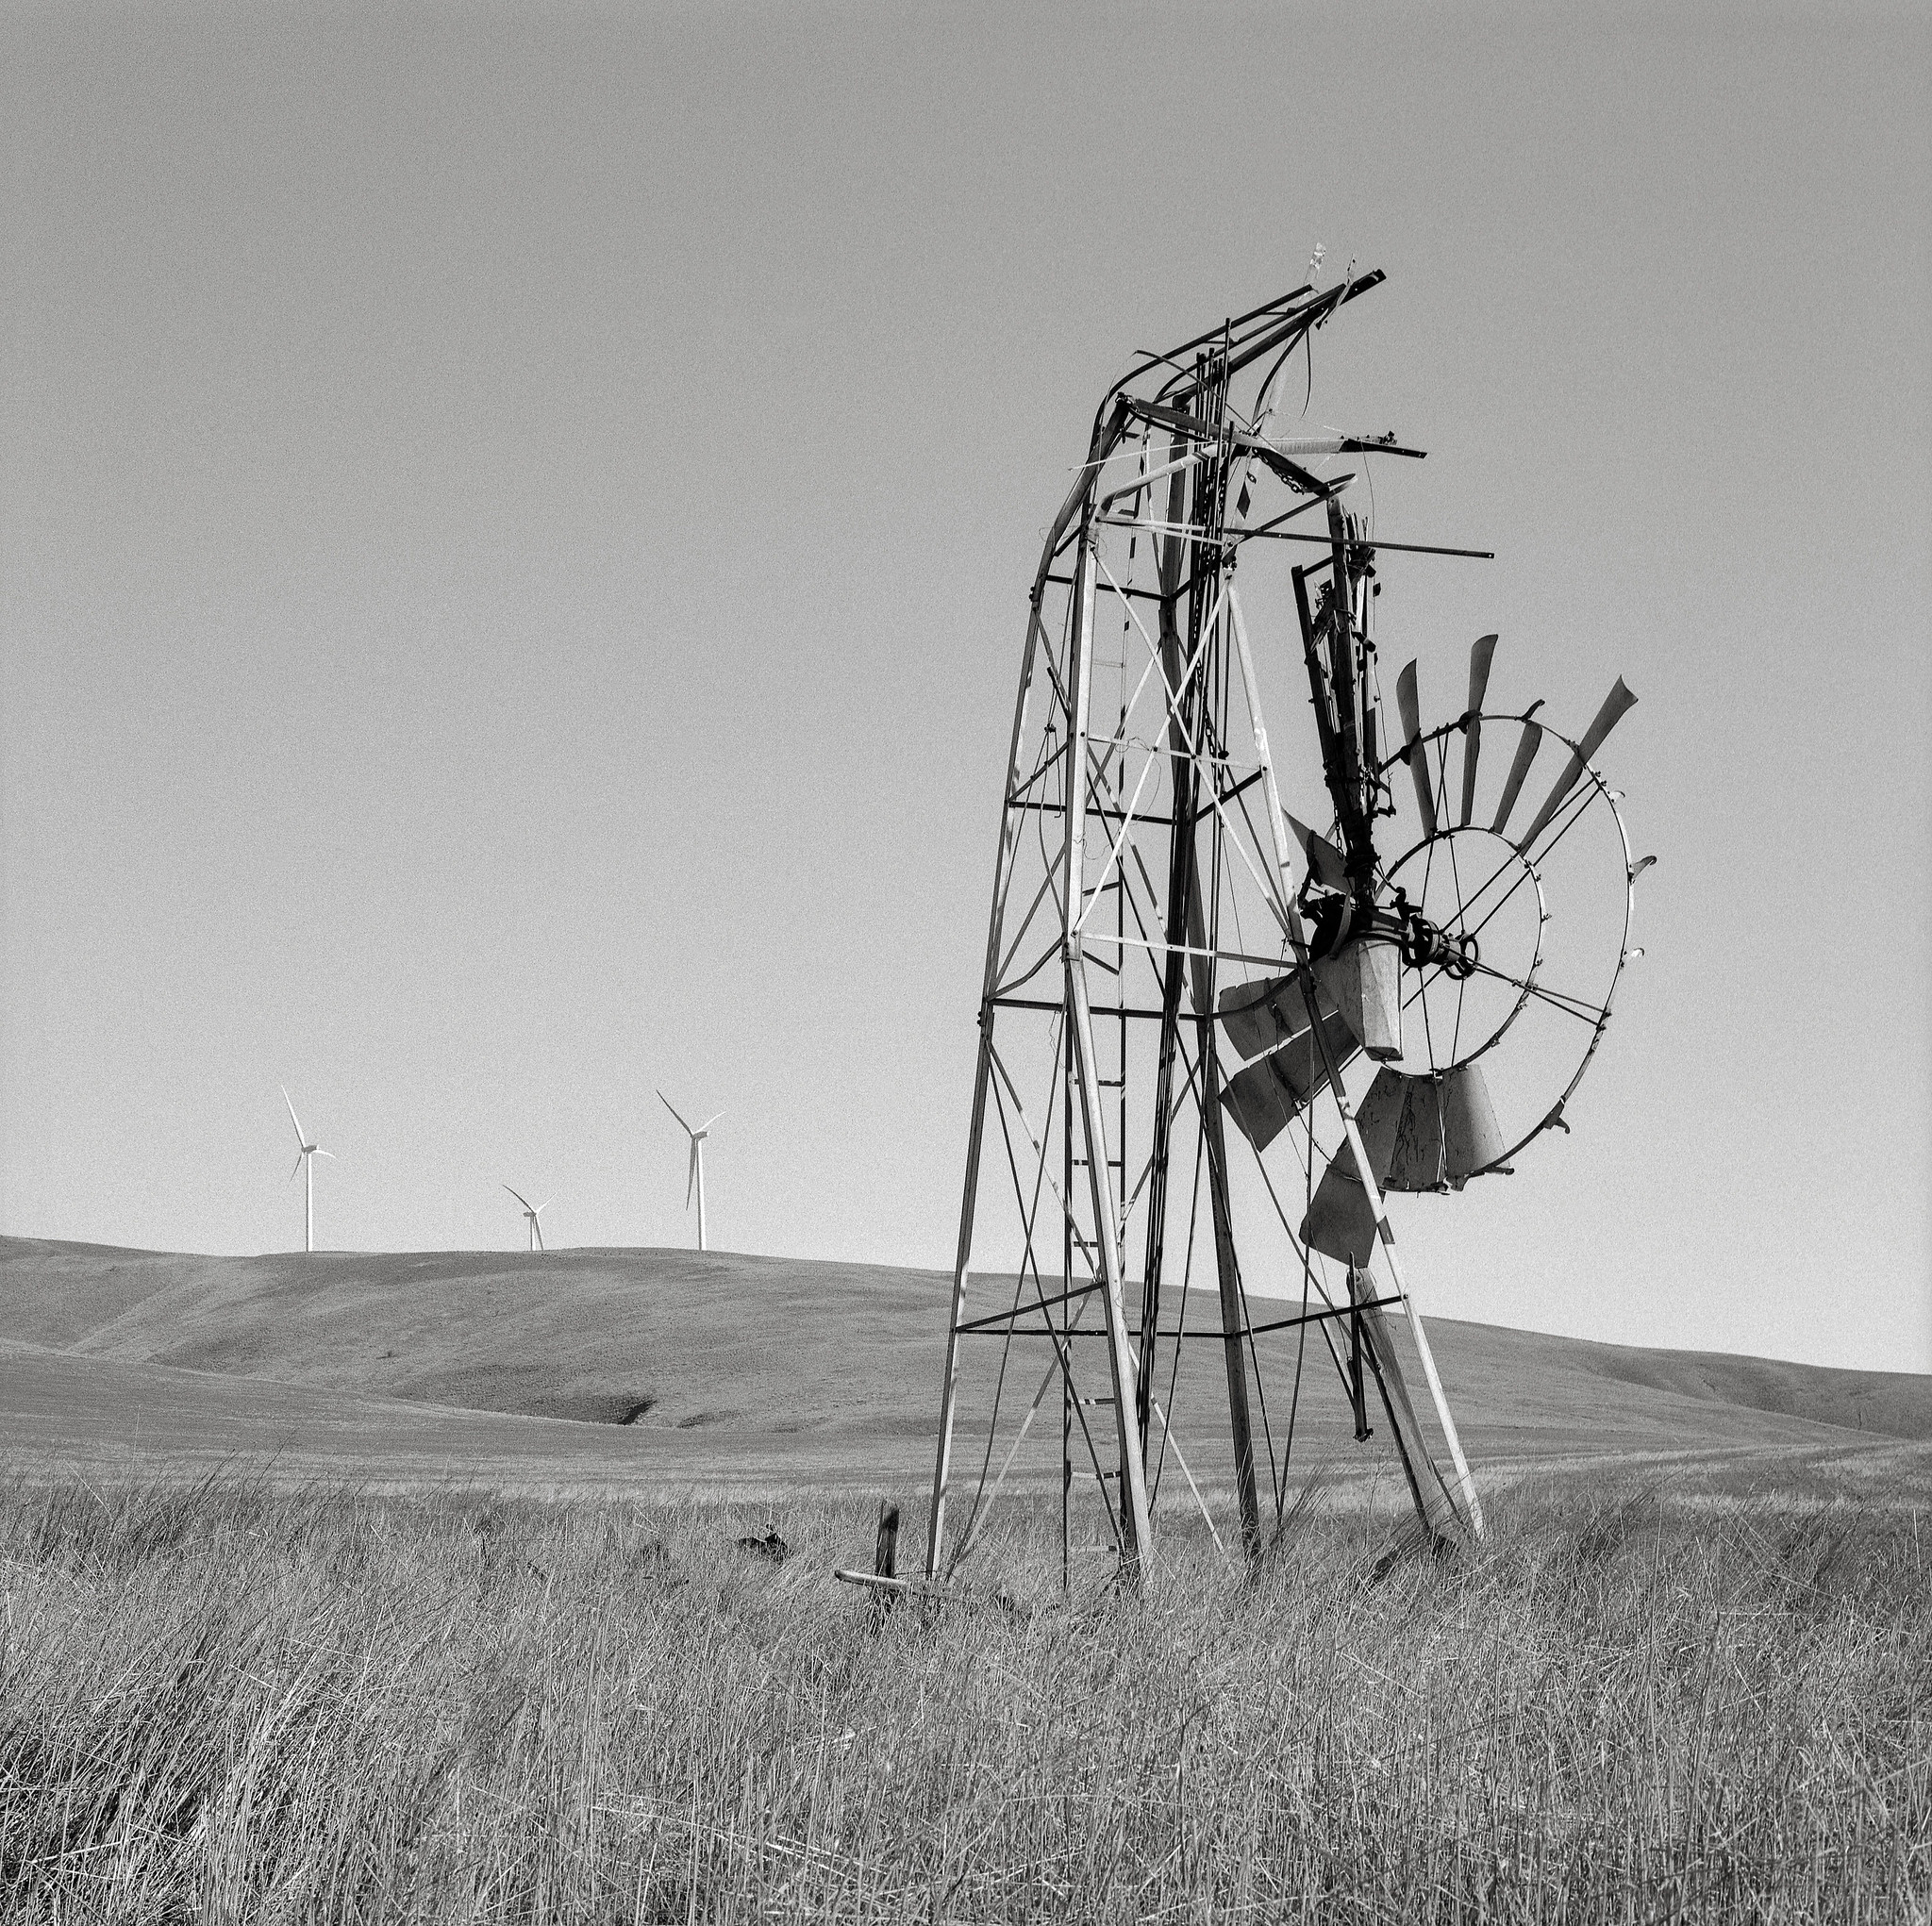 Windmills, Washington